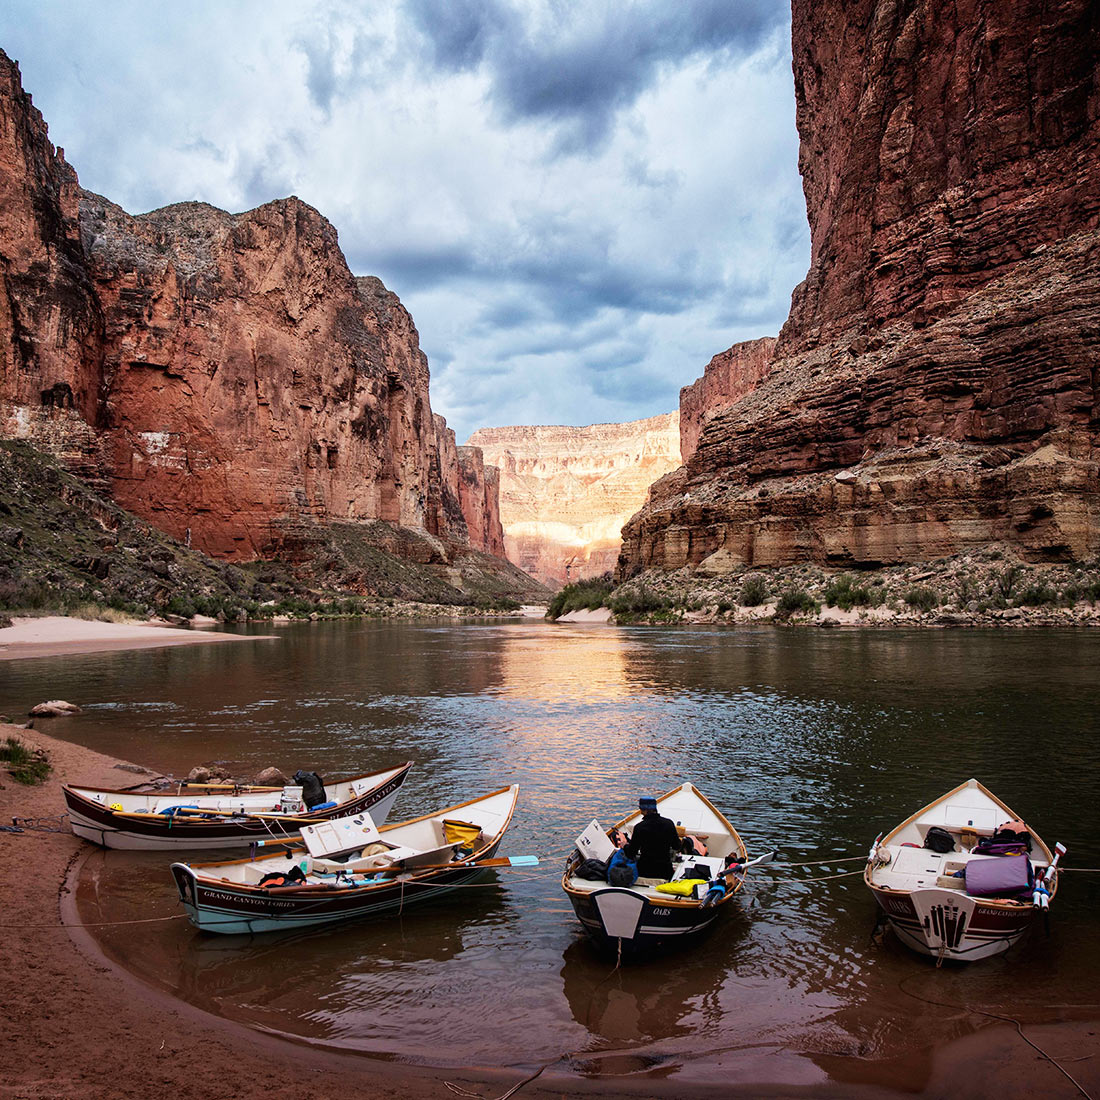 Dories in the Grand Canyon